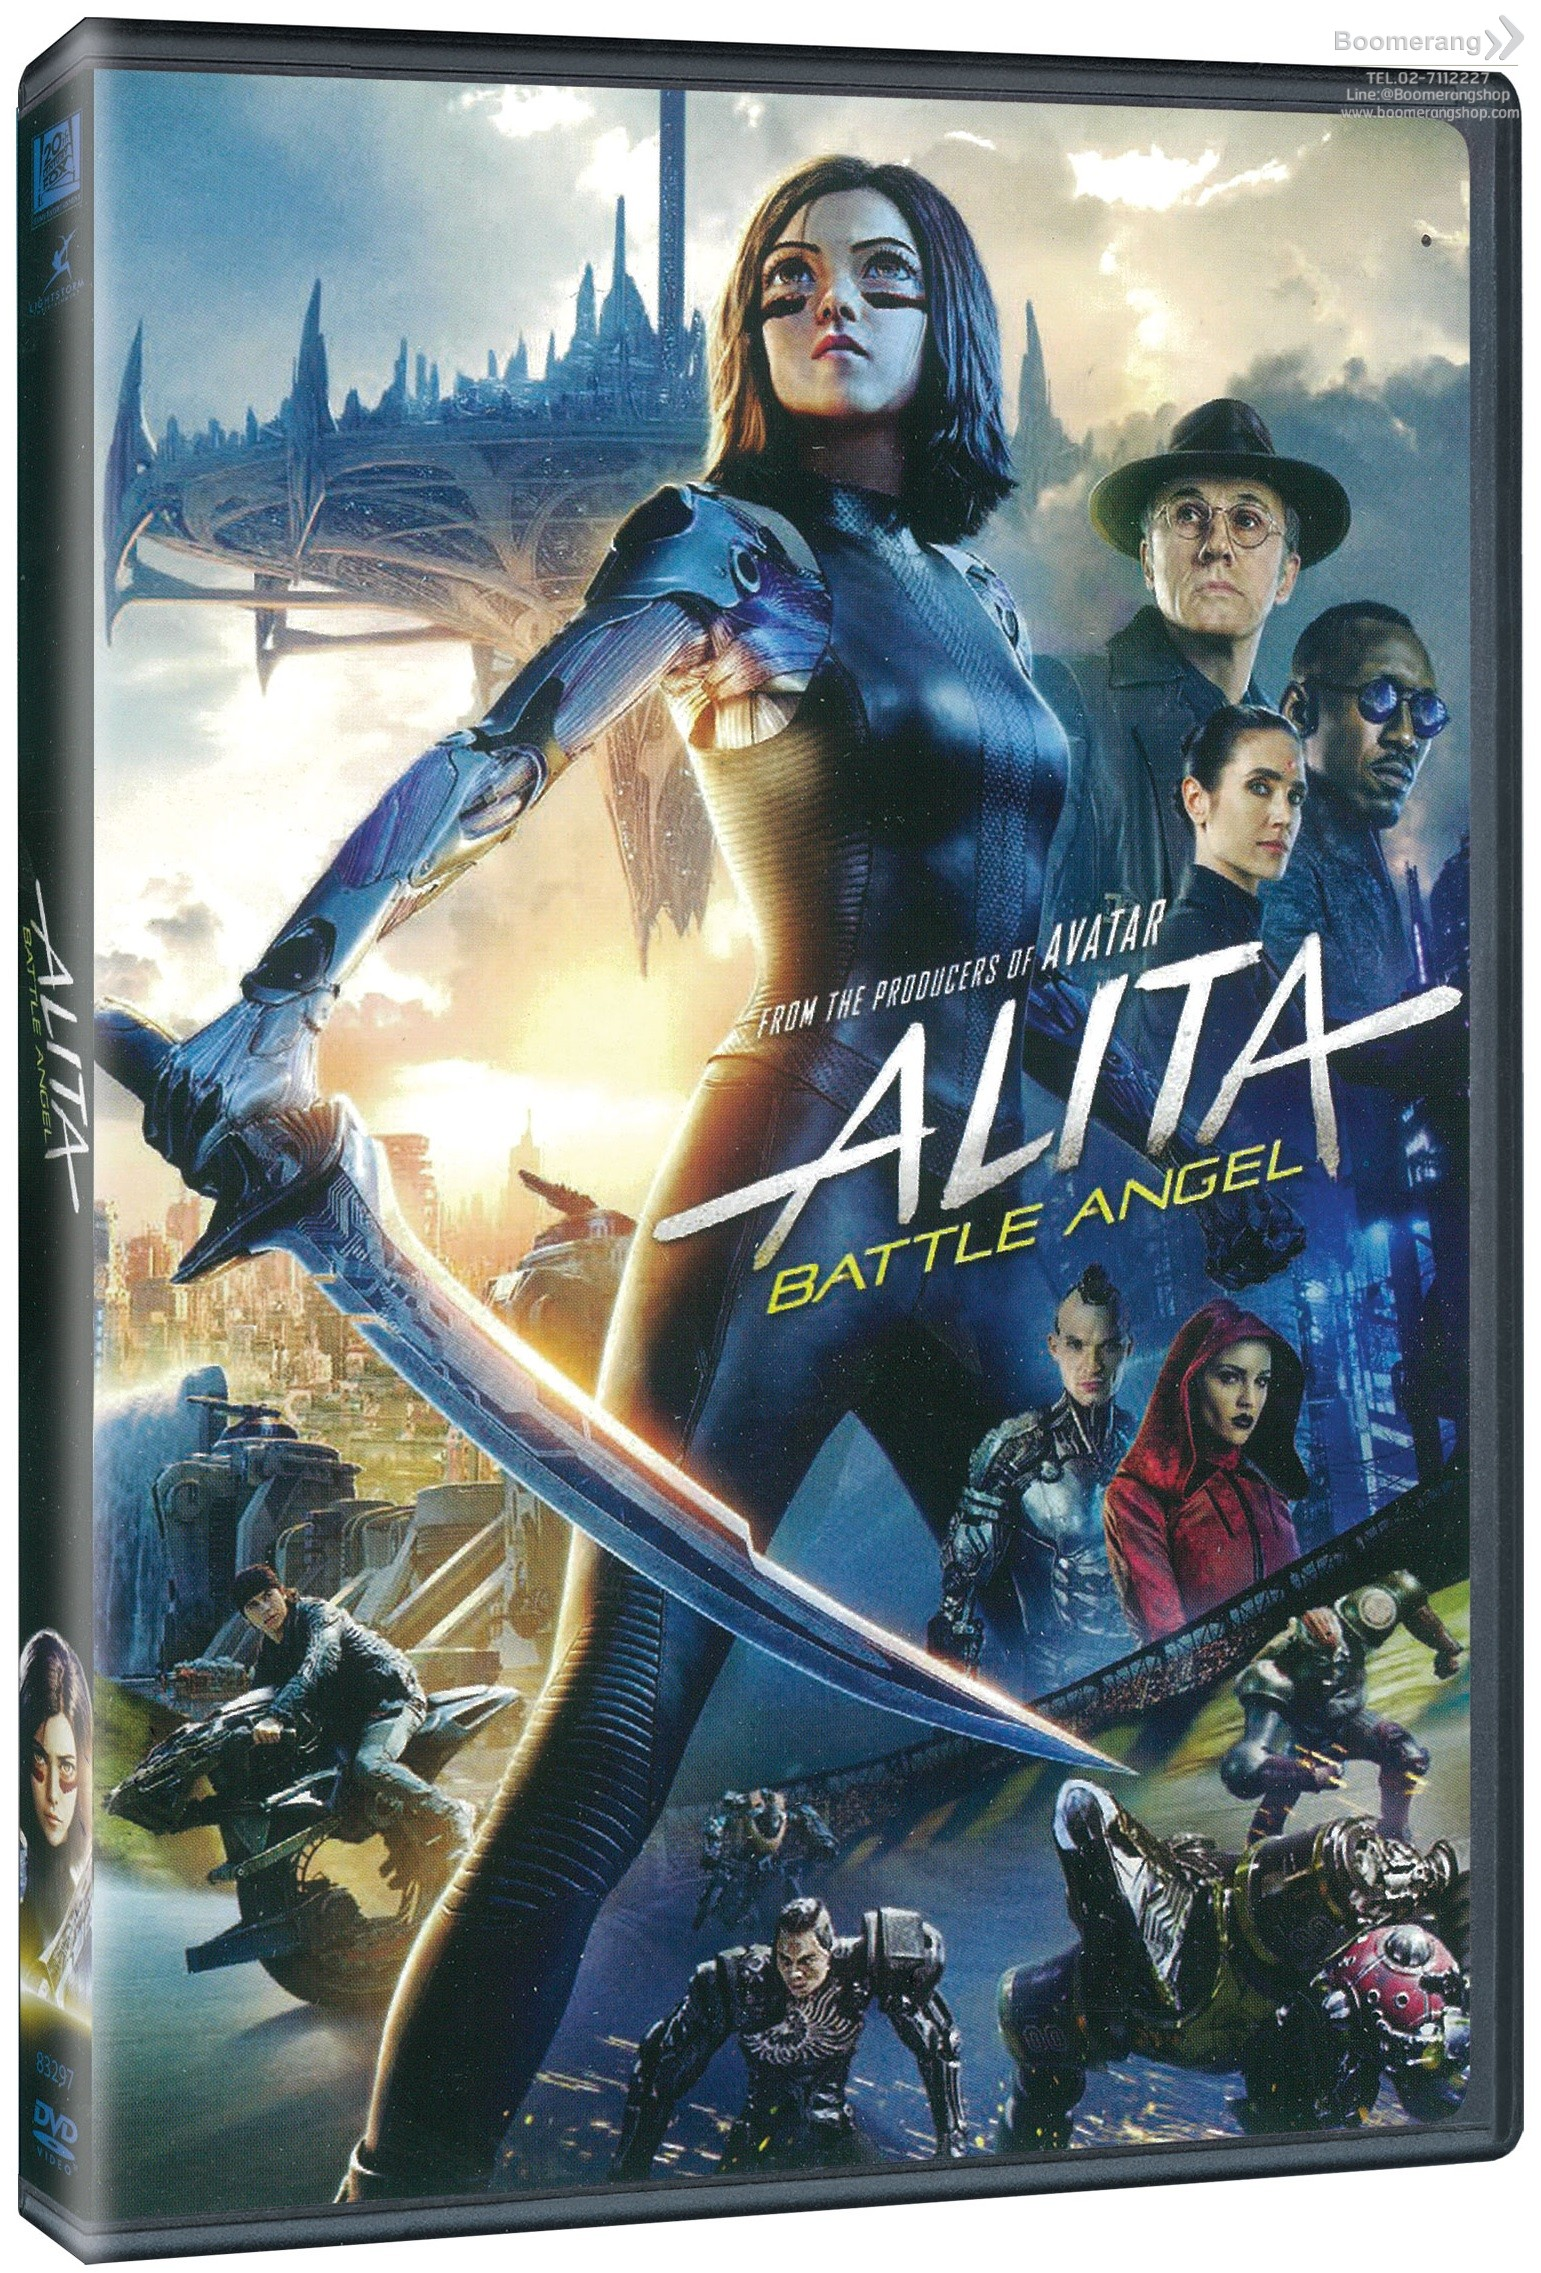 Alita Battle Angel Dvd Release Date: Click For Larger Image And Over Views